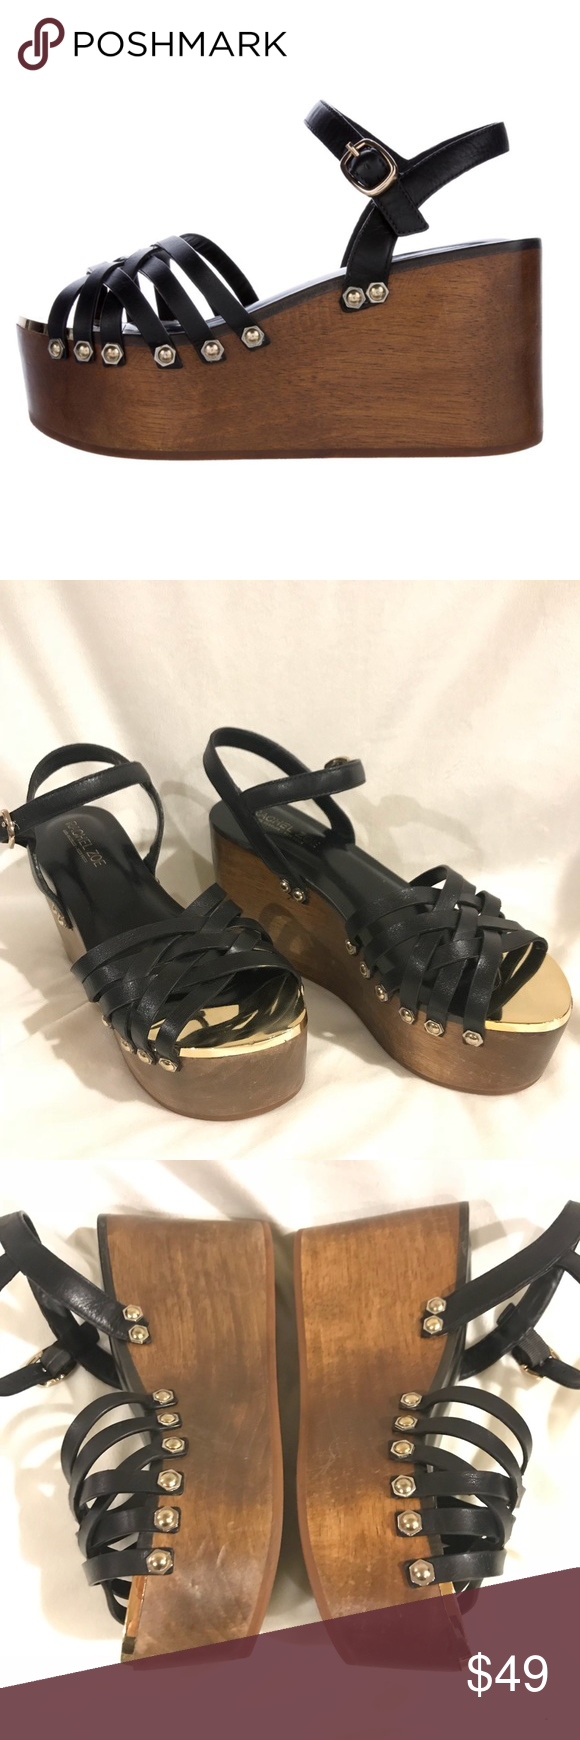 5cd394969396 RACHEL ZOE ✨ Mae Platform Wedge Sandals Black leather Rachel Zoe platform wedge  sandals with goldtone